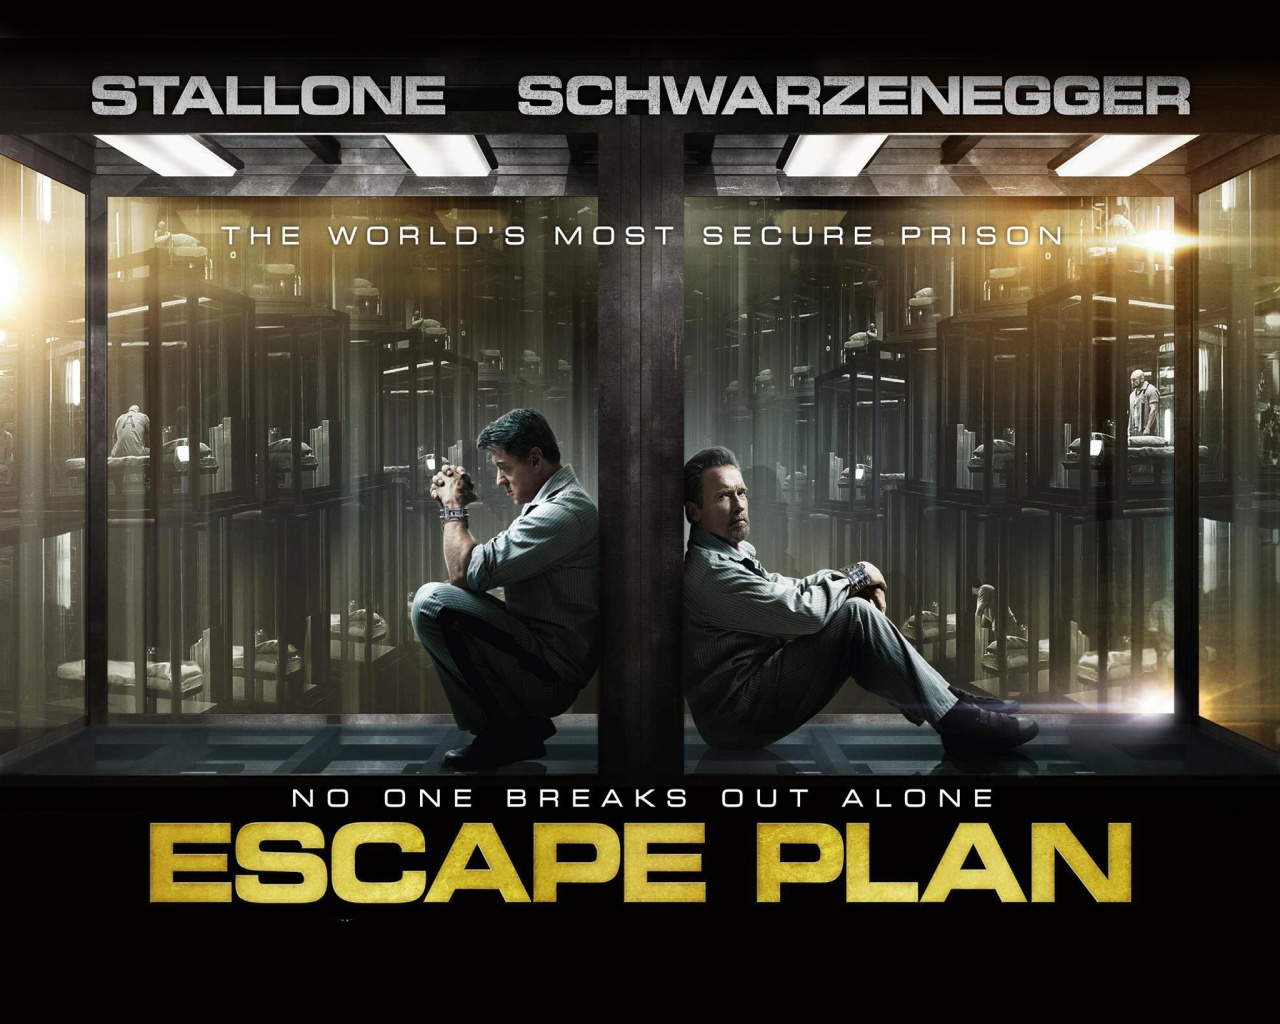 Escape Plan - For Profit Prisons are here, where will they take us?